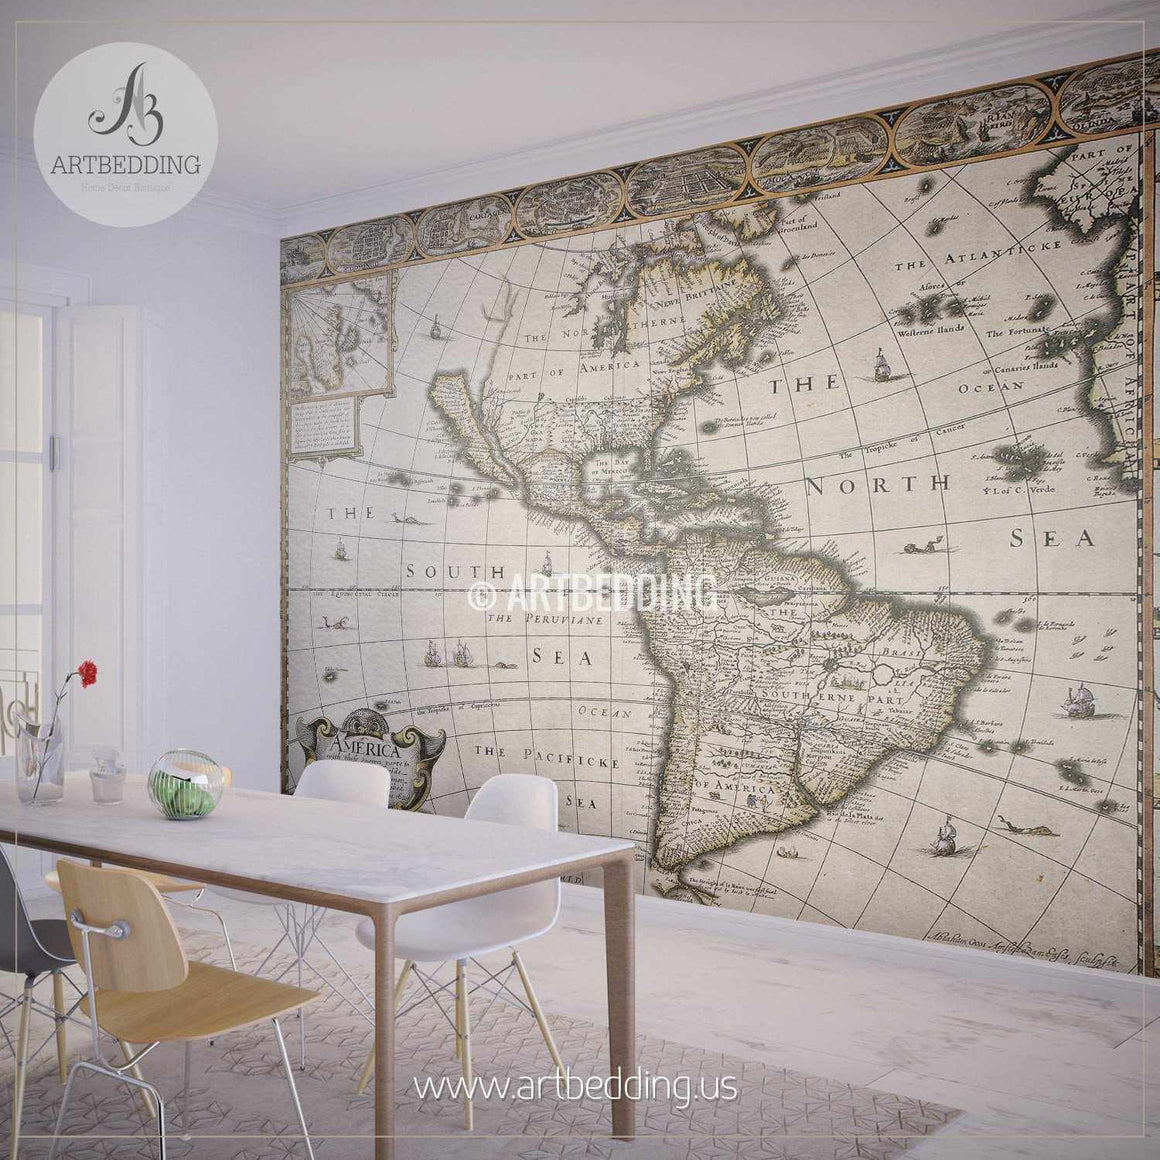 Vintage Map of America 1627 Wall Mural, Self Adhesive Peel & Stick Photo Mural, Atlas wall mural, mural home decor wall mural